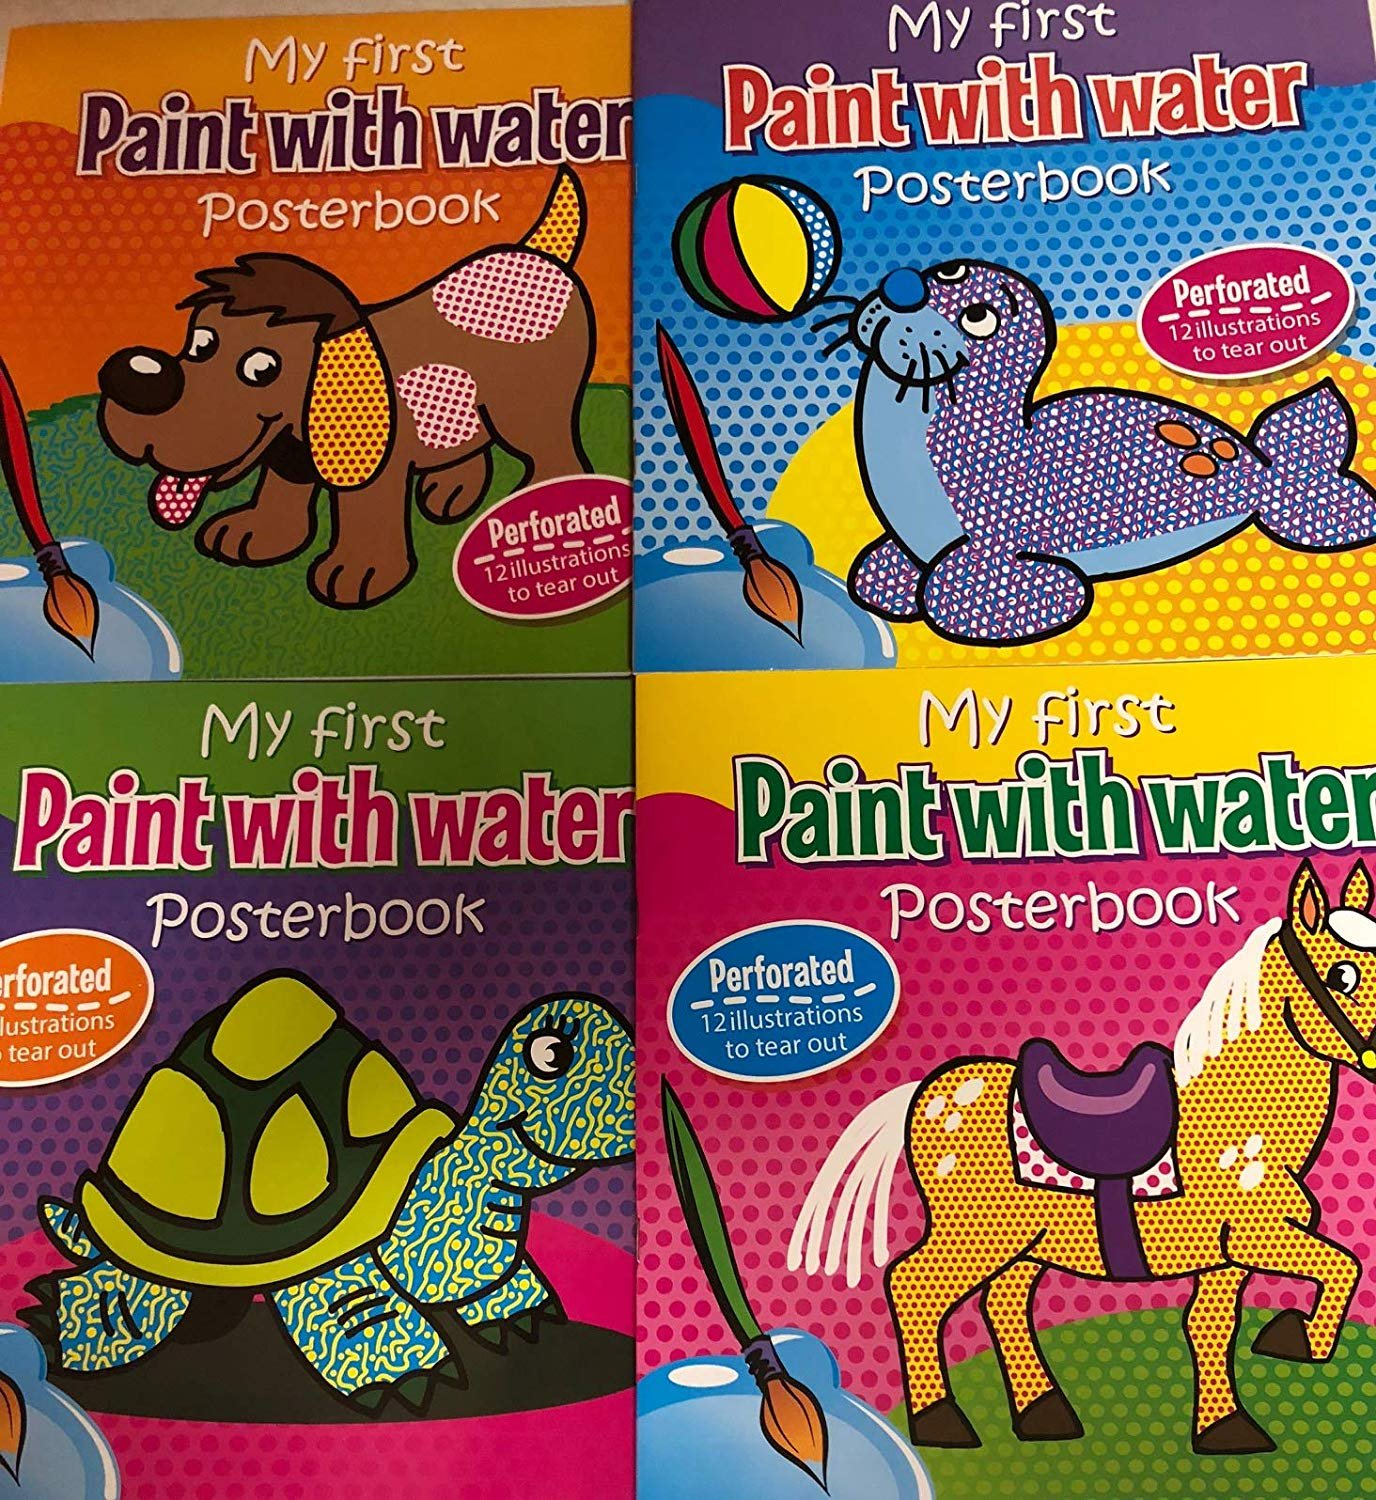 My First Paint with Water POSTERBOOK (Perforated Pages) Bundle of 4